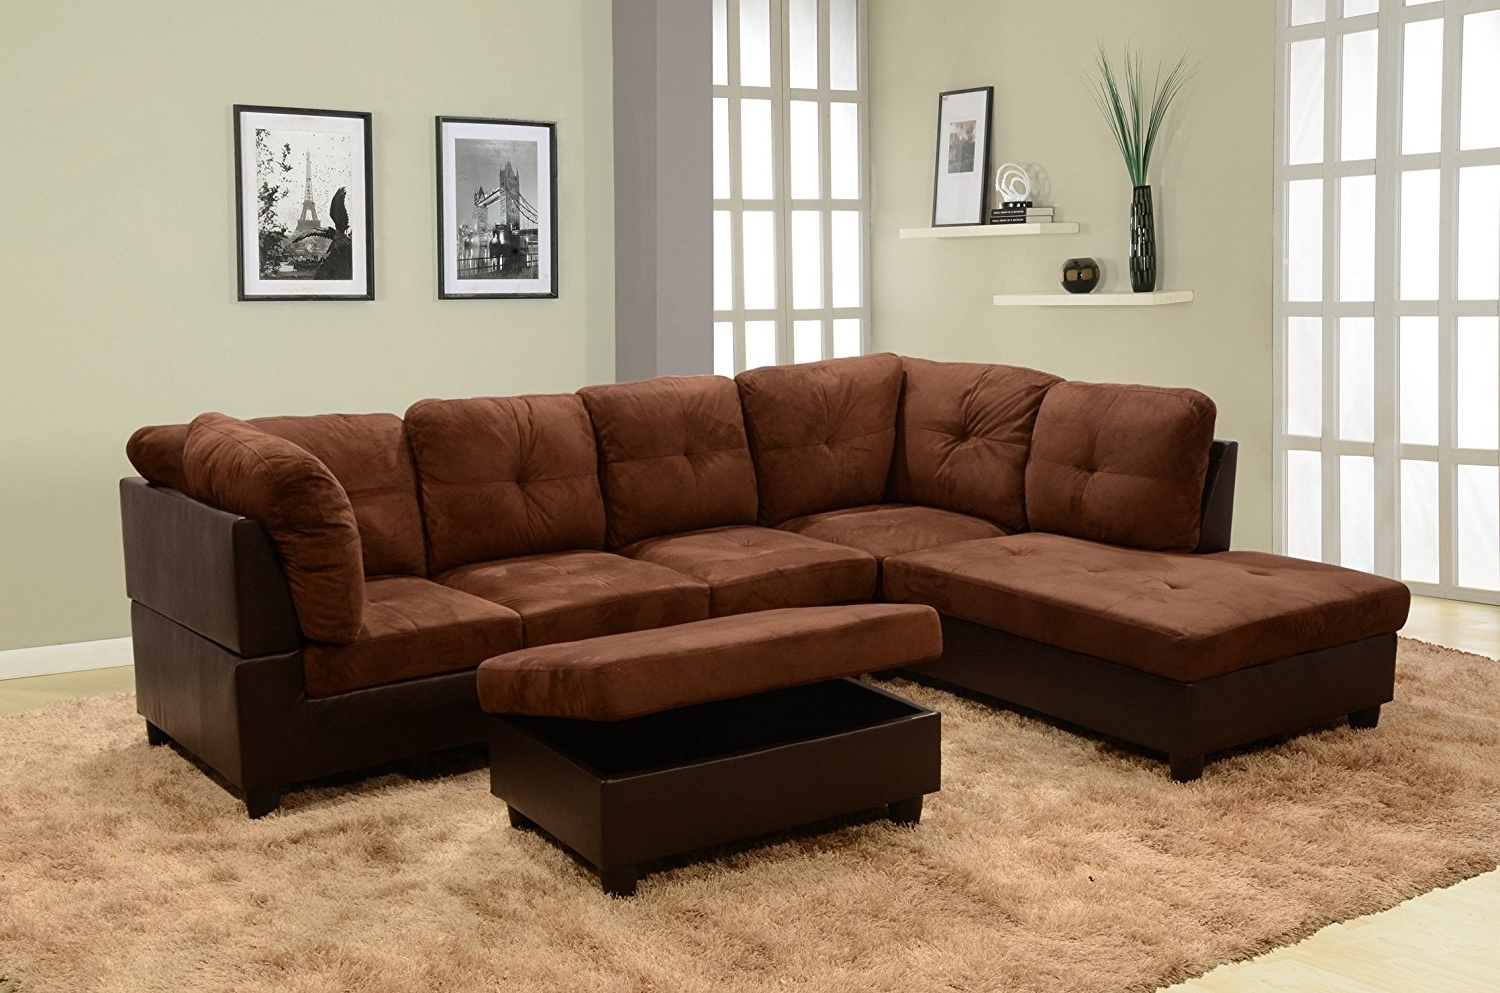 2017 Sectionals With Ottoman Intended For Amazon: Lifestyle Coffee 3 Piece Microfiber & Faux Leather (View 10 of 15)